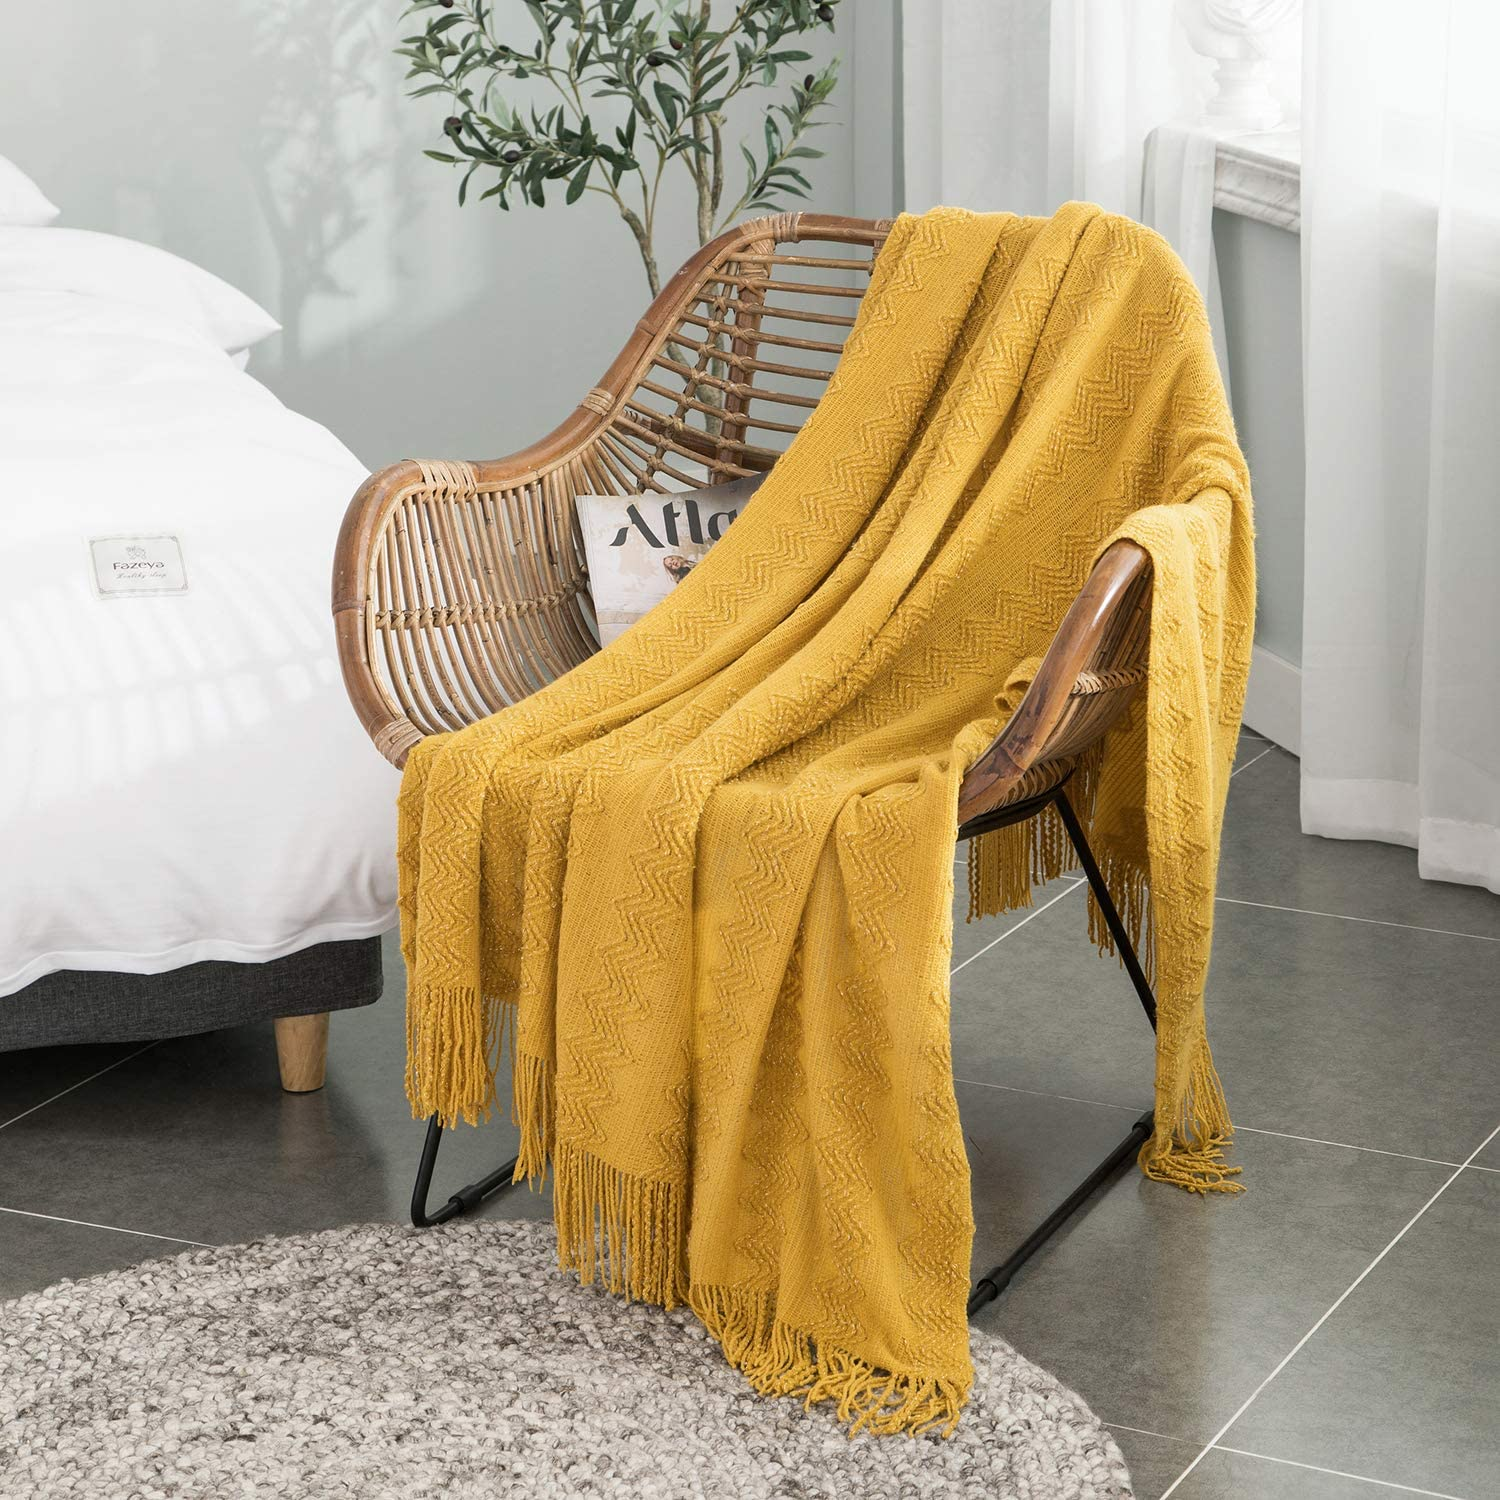 """ALPHA HOME Woven Acrylic Bed Throw Blanket for Couch 50"""" x 60"""" Soft Comfy Lightweight Tassel Mustard Blanket for Adults Child Elderly Infant Fringe Decorative Blanket for Bed & Travel Mustard Yellow"""